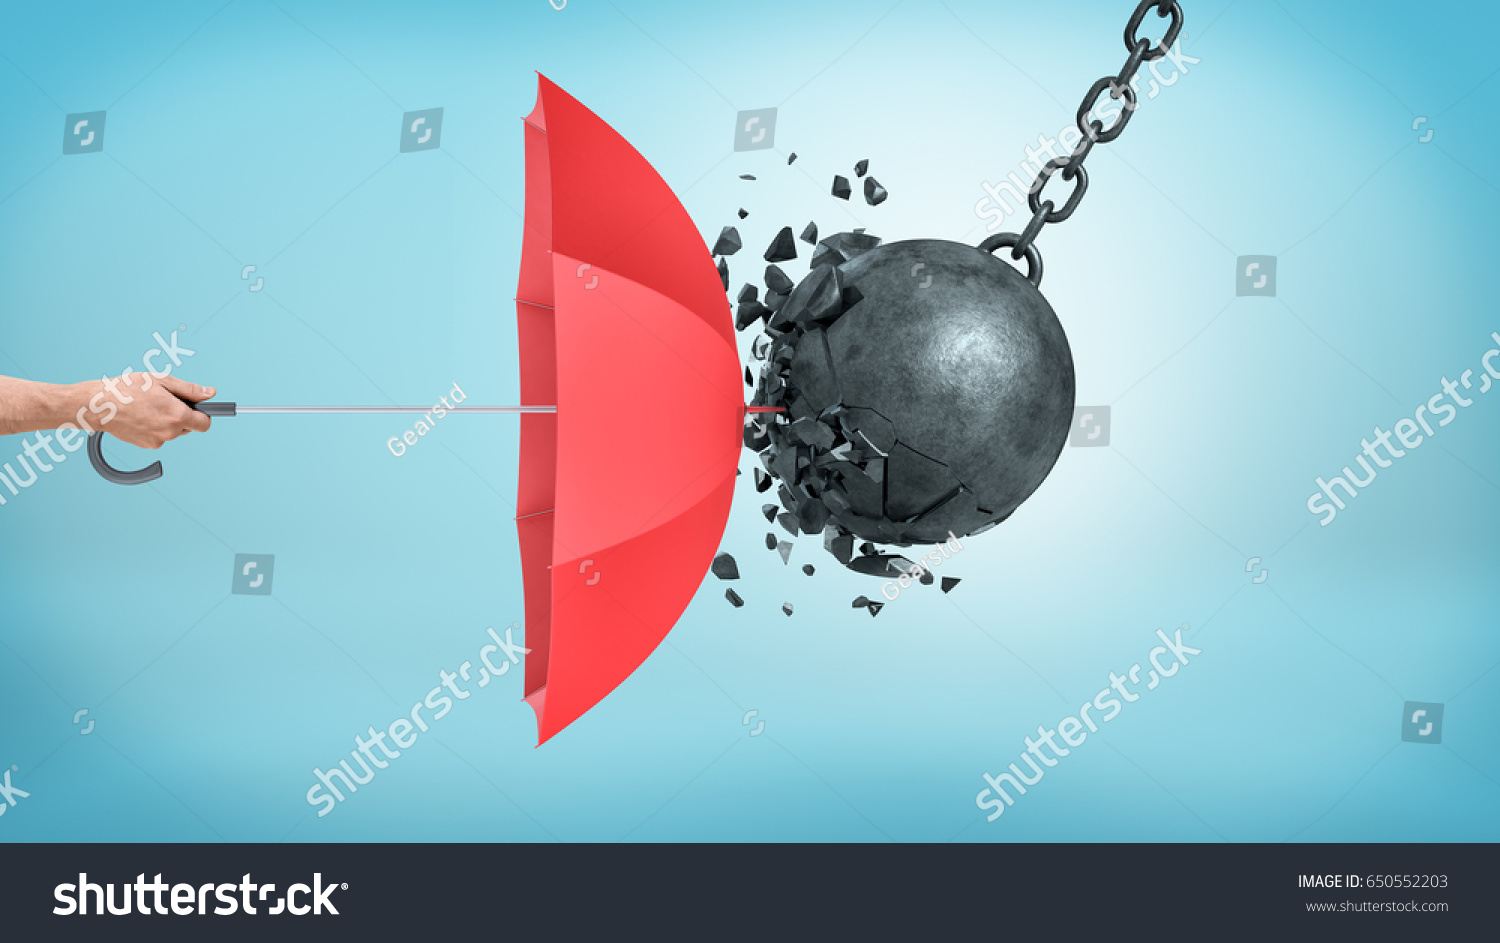 A male hand holding an open red umbrella which protects from a collision with a broken wrecking ball. Insurance and protection. Safety measures. IT defense. #650552203